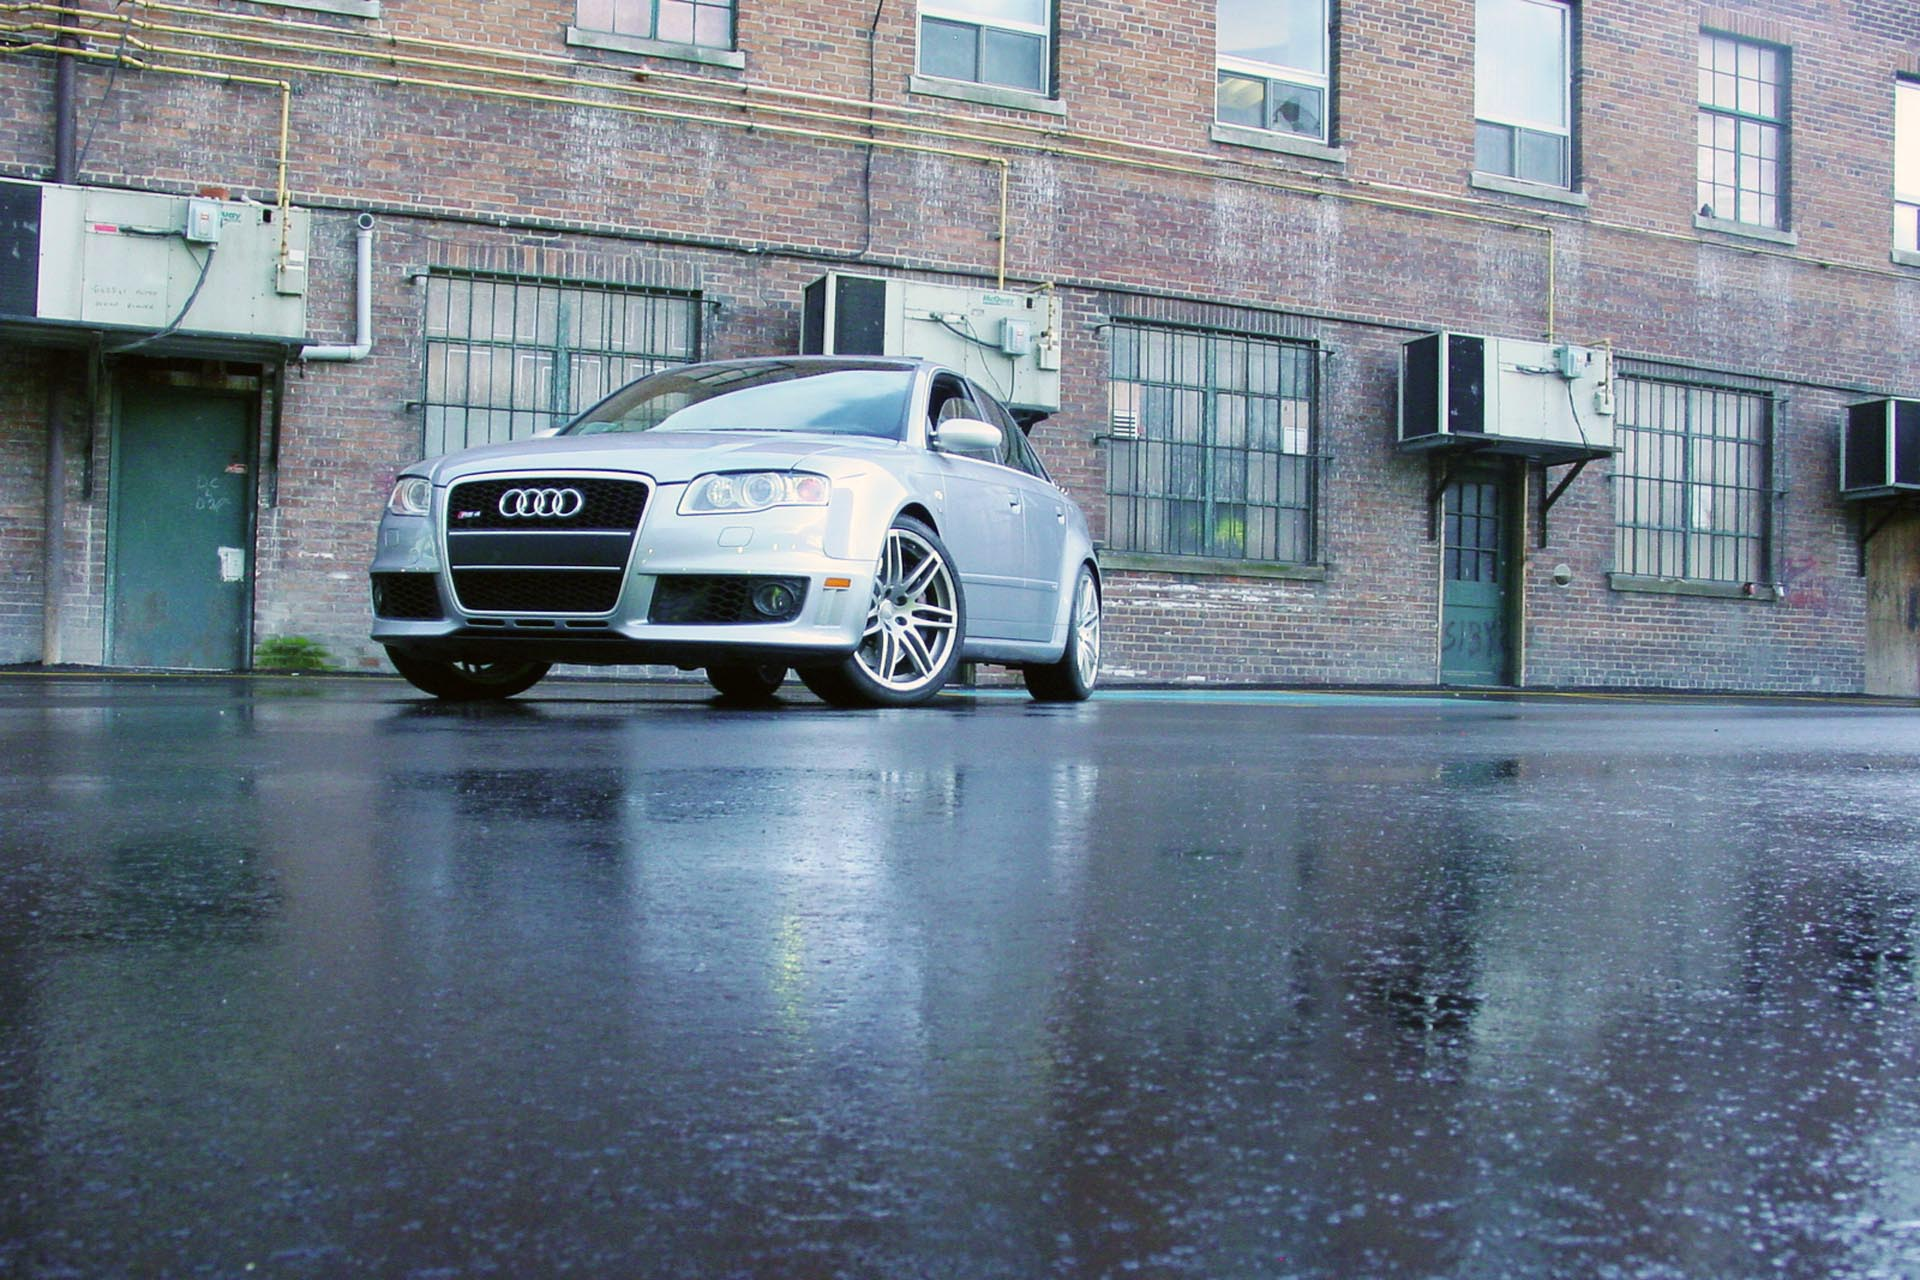 All hail its majesty of rip-snorting sleeper super-sedans, the Audi RS 4! This over-the-top, under-the-radar rocket-rig was only sold to us Canucks for two years, and you'll be shopping the used market for one, if at all. Mostly, you'll love how Audi installed a throbbing 4.2L V8 with 420 horsepower and a redline of eight-freaking-thousand revs (!!!), along with a proper gentleman's manual transmission, with gear ratios so tall you could rip it into second to pass an 18-wheeler on the highway. This one goes like bananas and looks classy and discreet, all while letting drivers jump in with both feet.